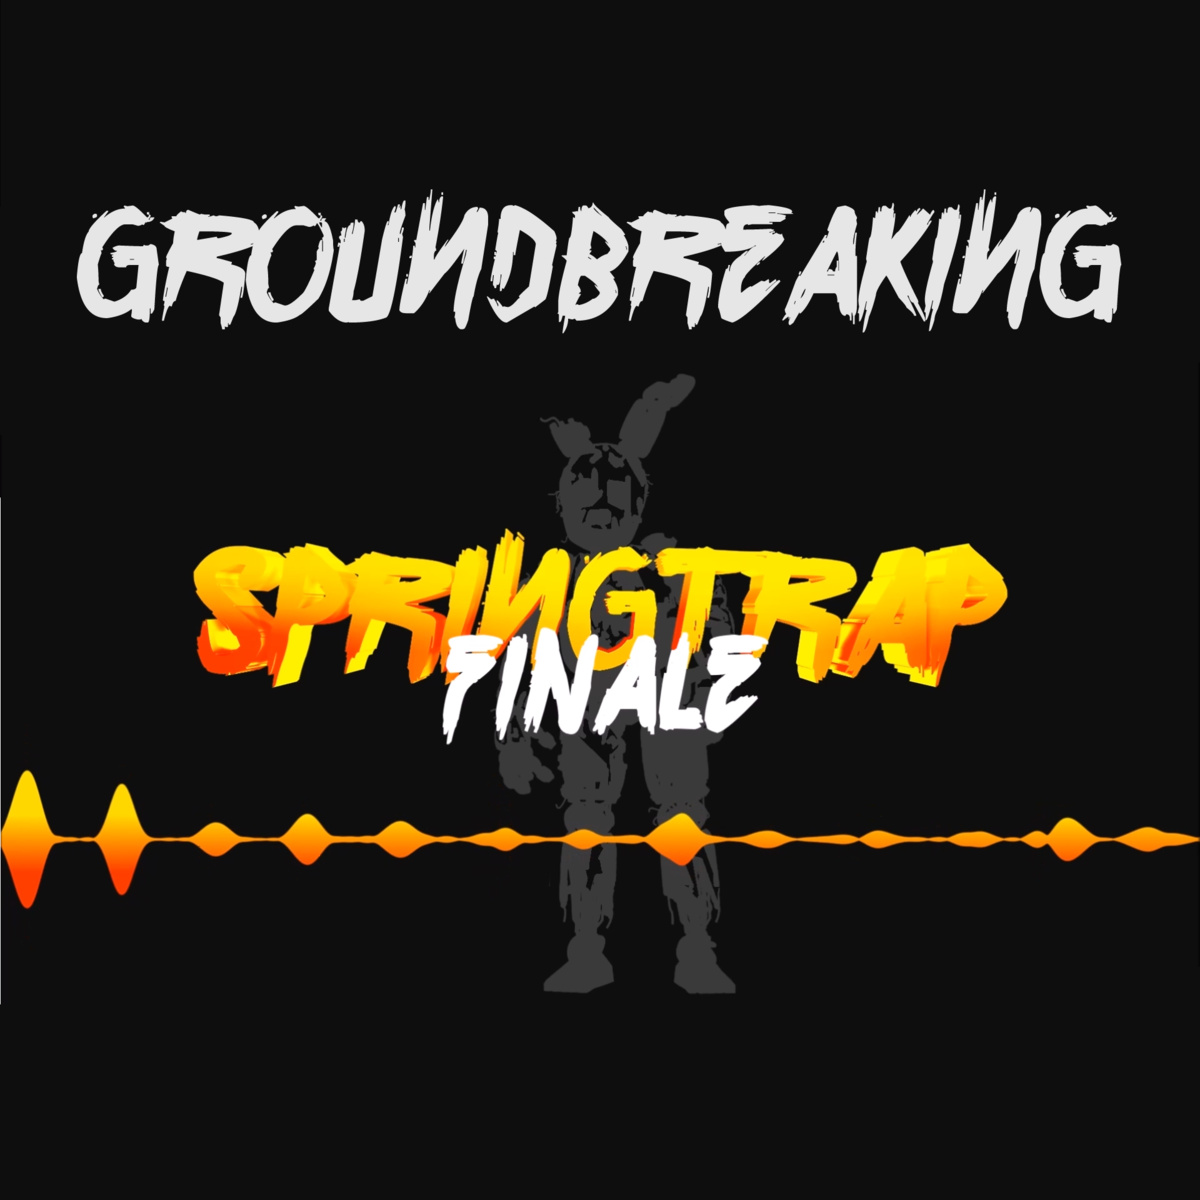 Springtrap Finale by Groundbreaking